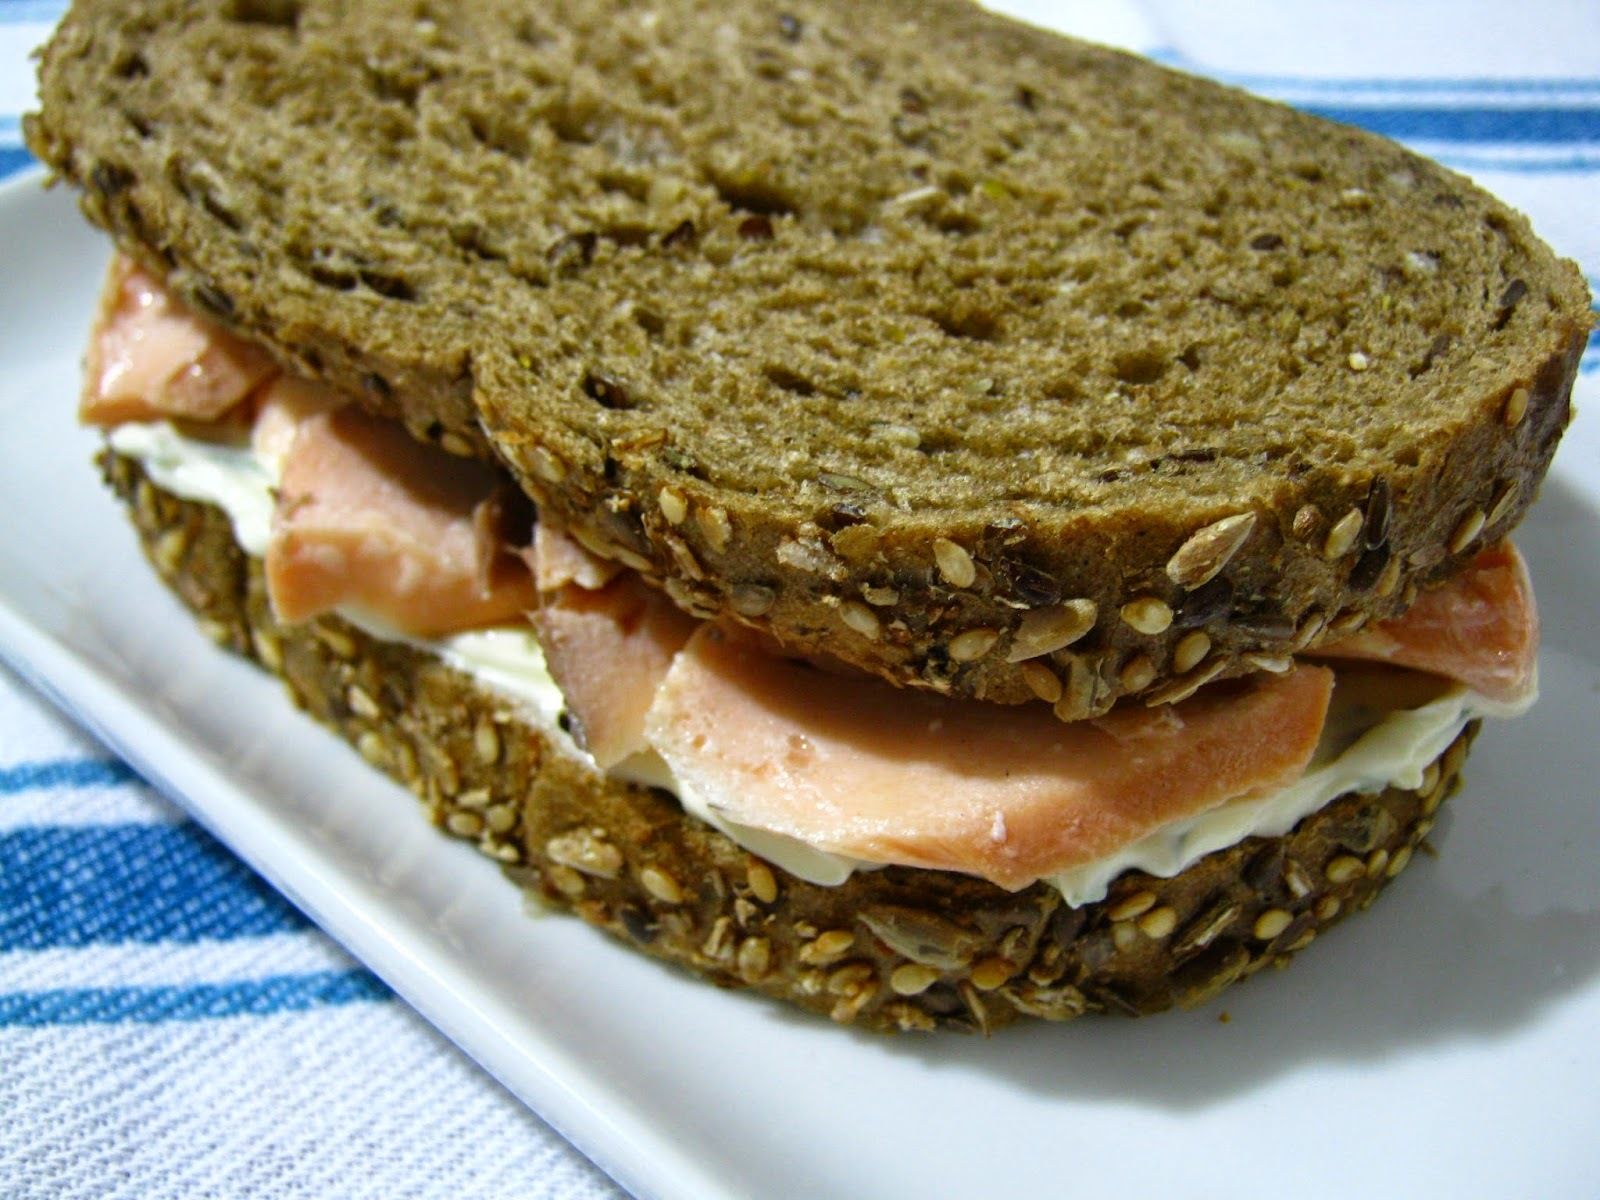 Sanduíche de salmão e cream cheese